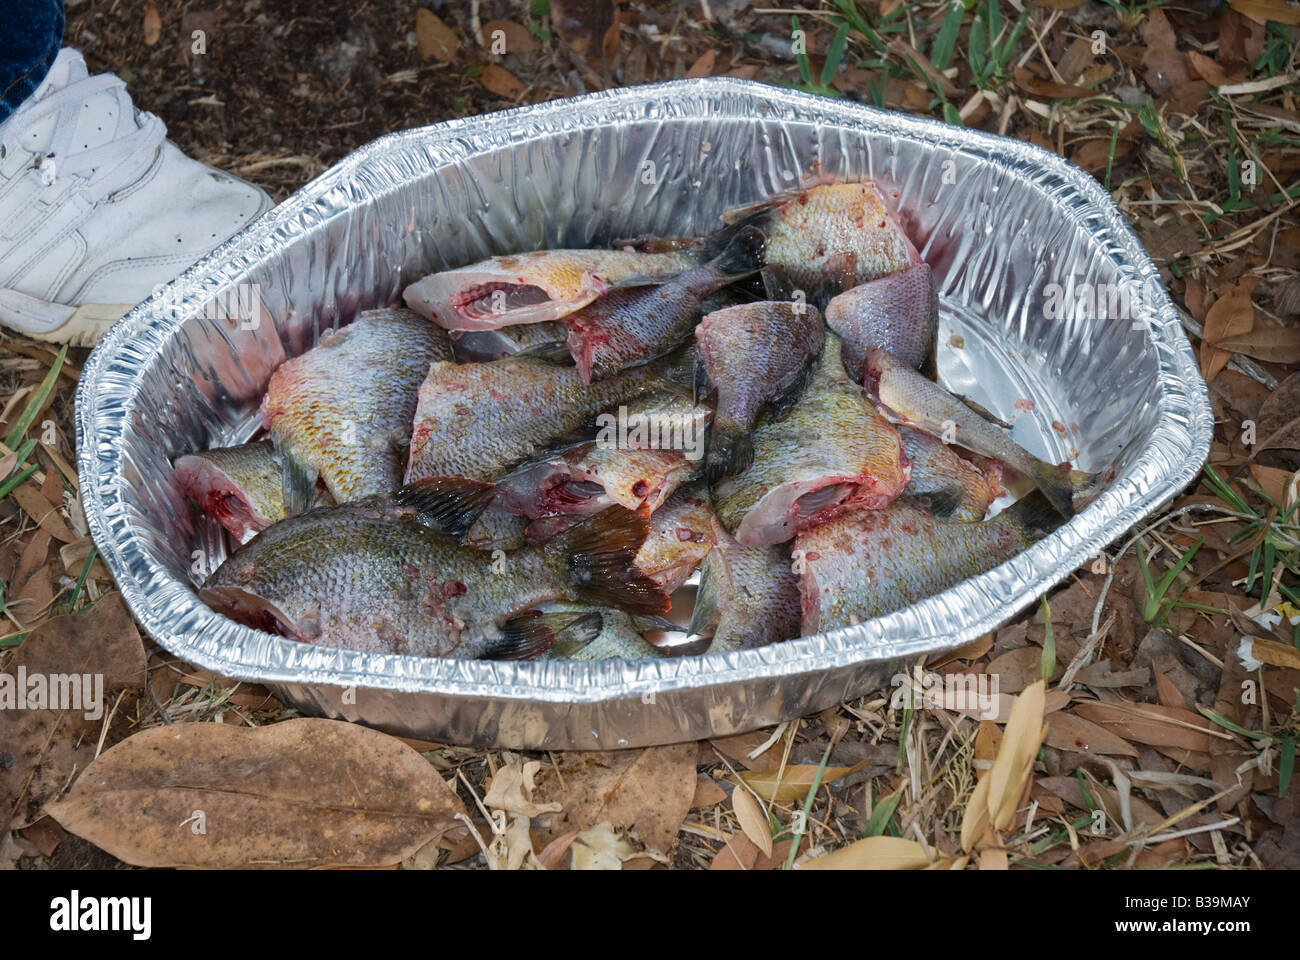 Freshwater fish of florida - Stock Photo Cleaned Fish Ready For Frying From Suwannee River North Florida